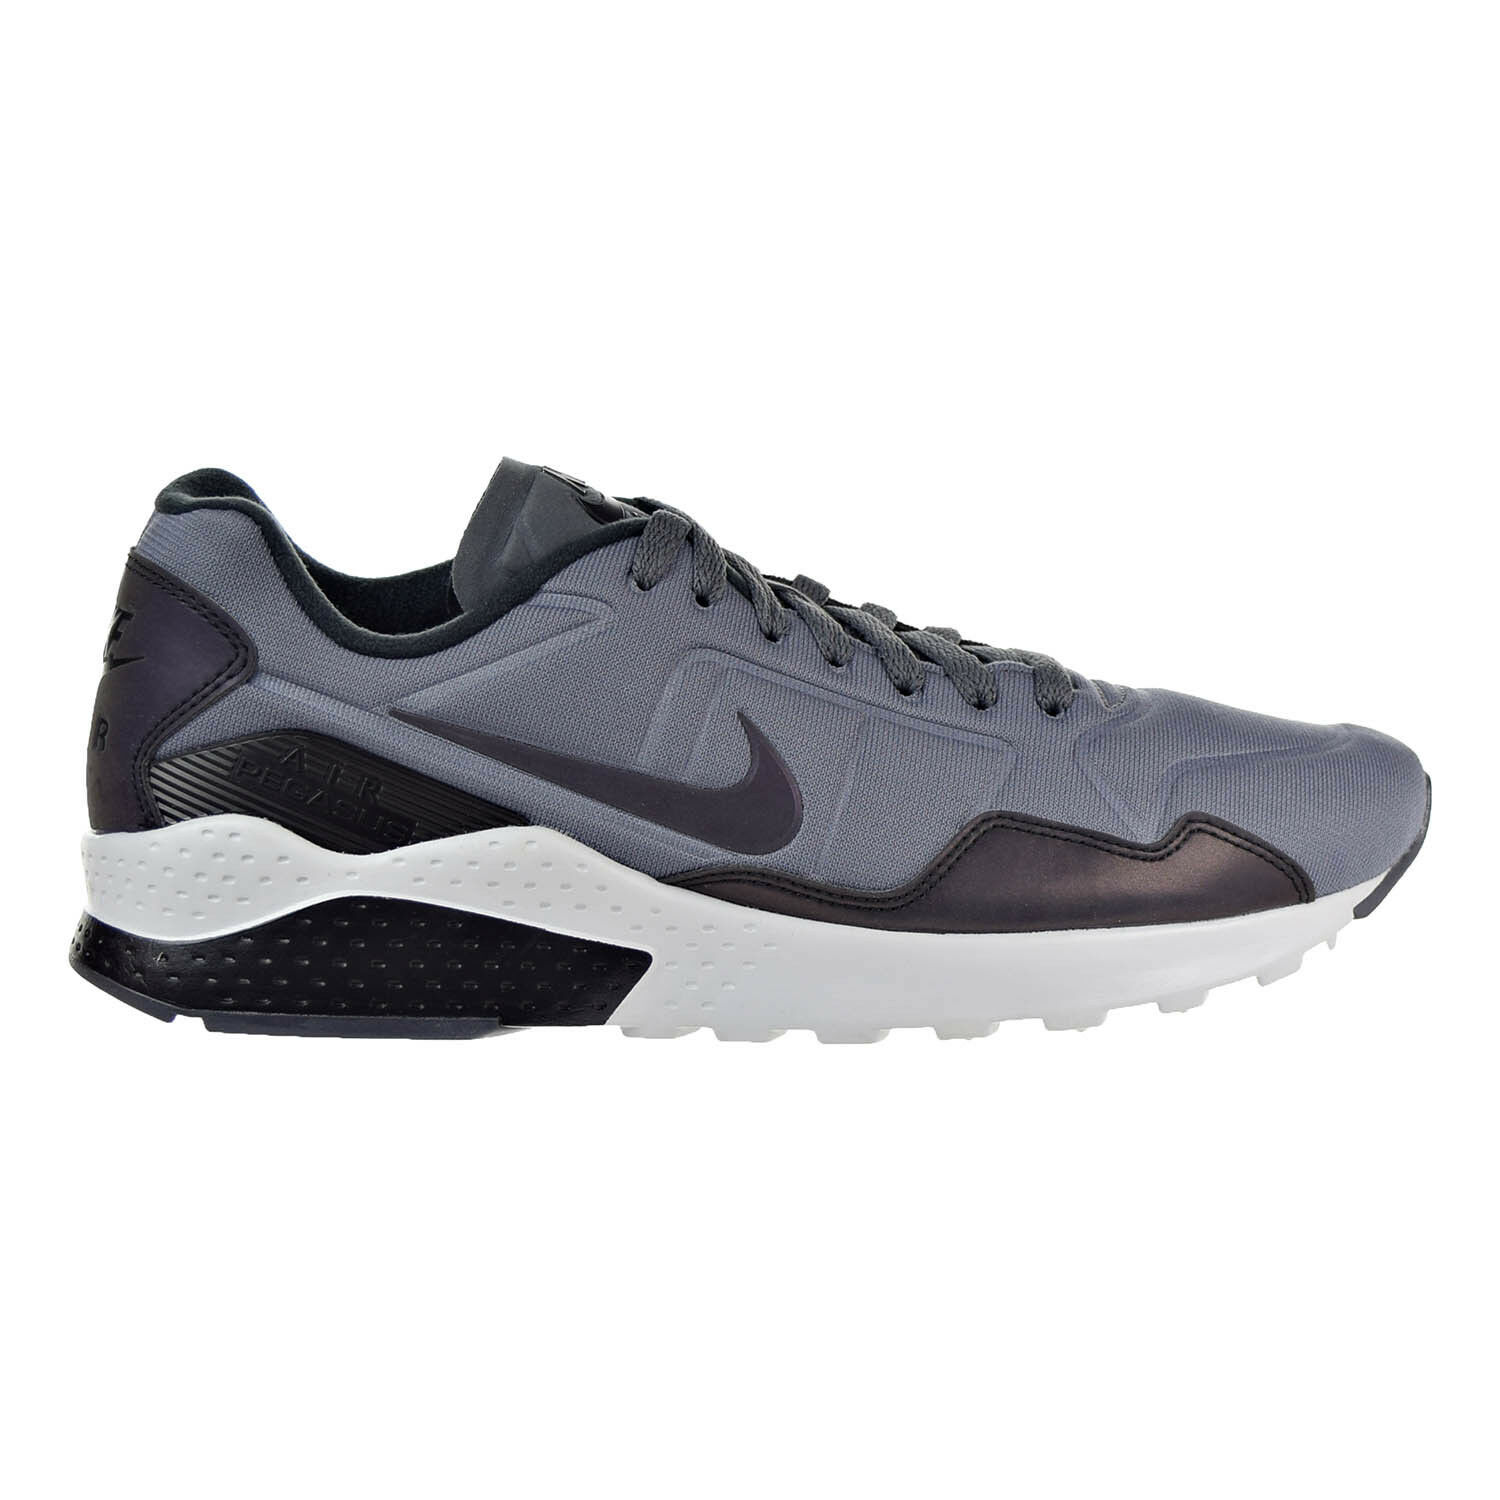 Nike Air Zoom Pegasus 92 Premium Men's Shoes Dark Grey/Black/Platinum 844654-004